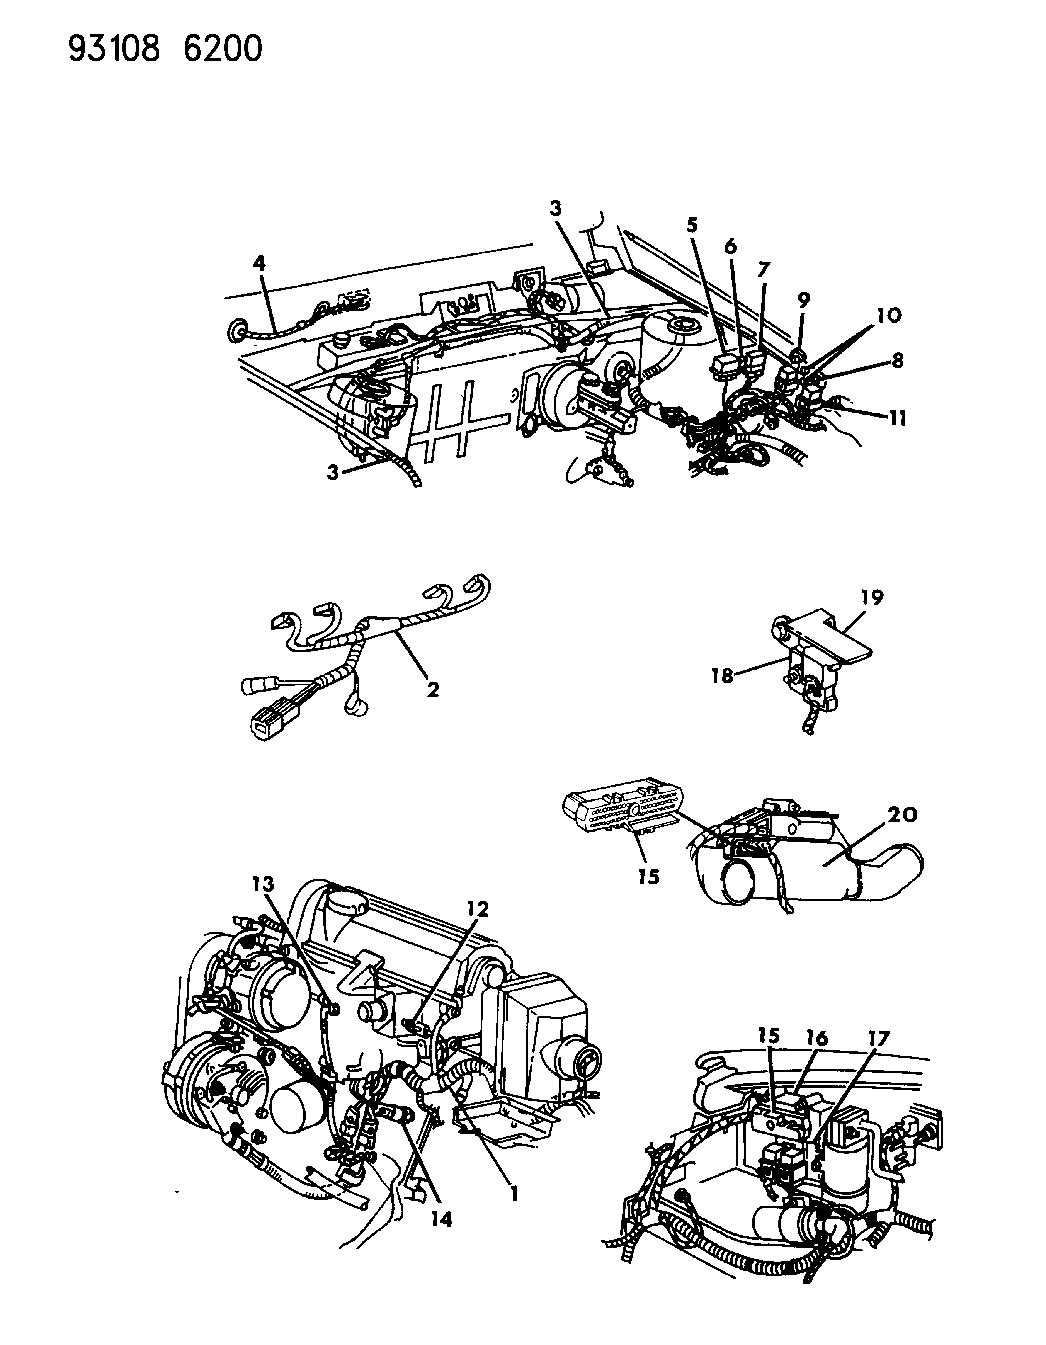 1993 chrysler lebaron wiring--engine & related parts a body 1994 chrysler lebaron wiring diagram